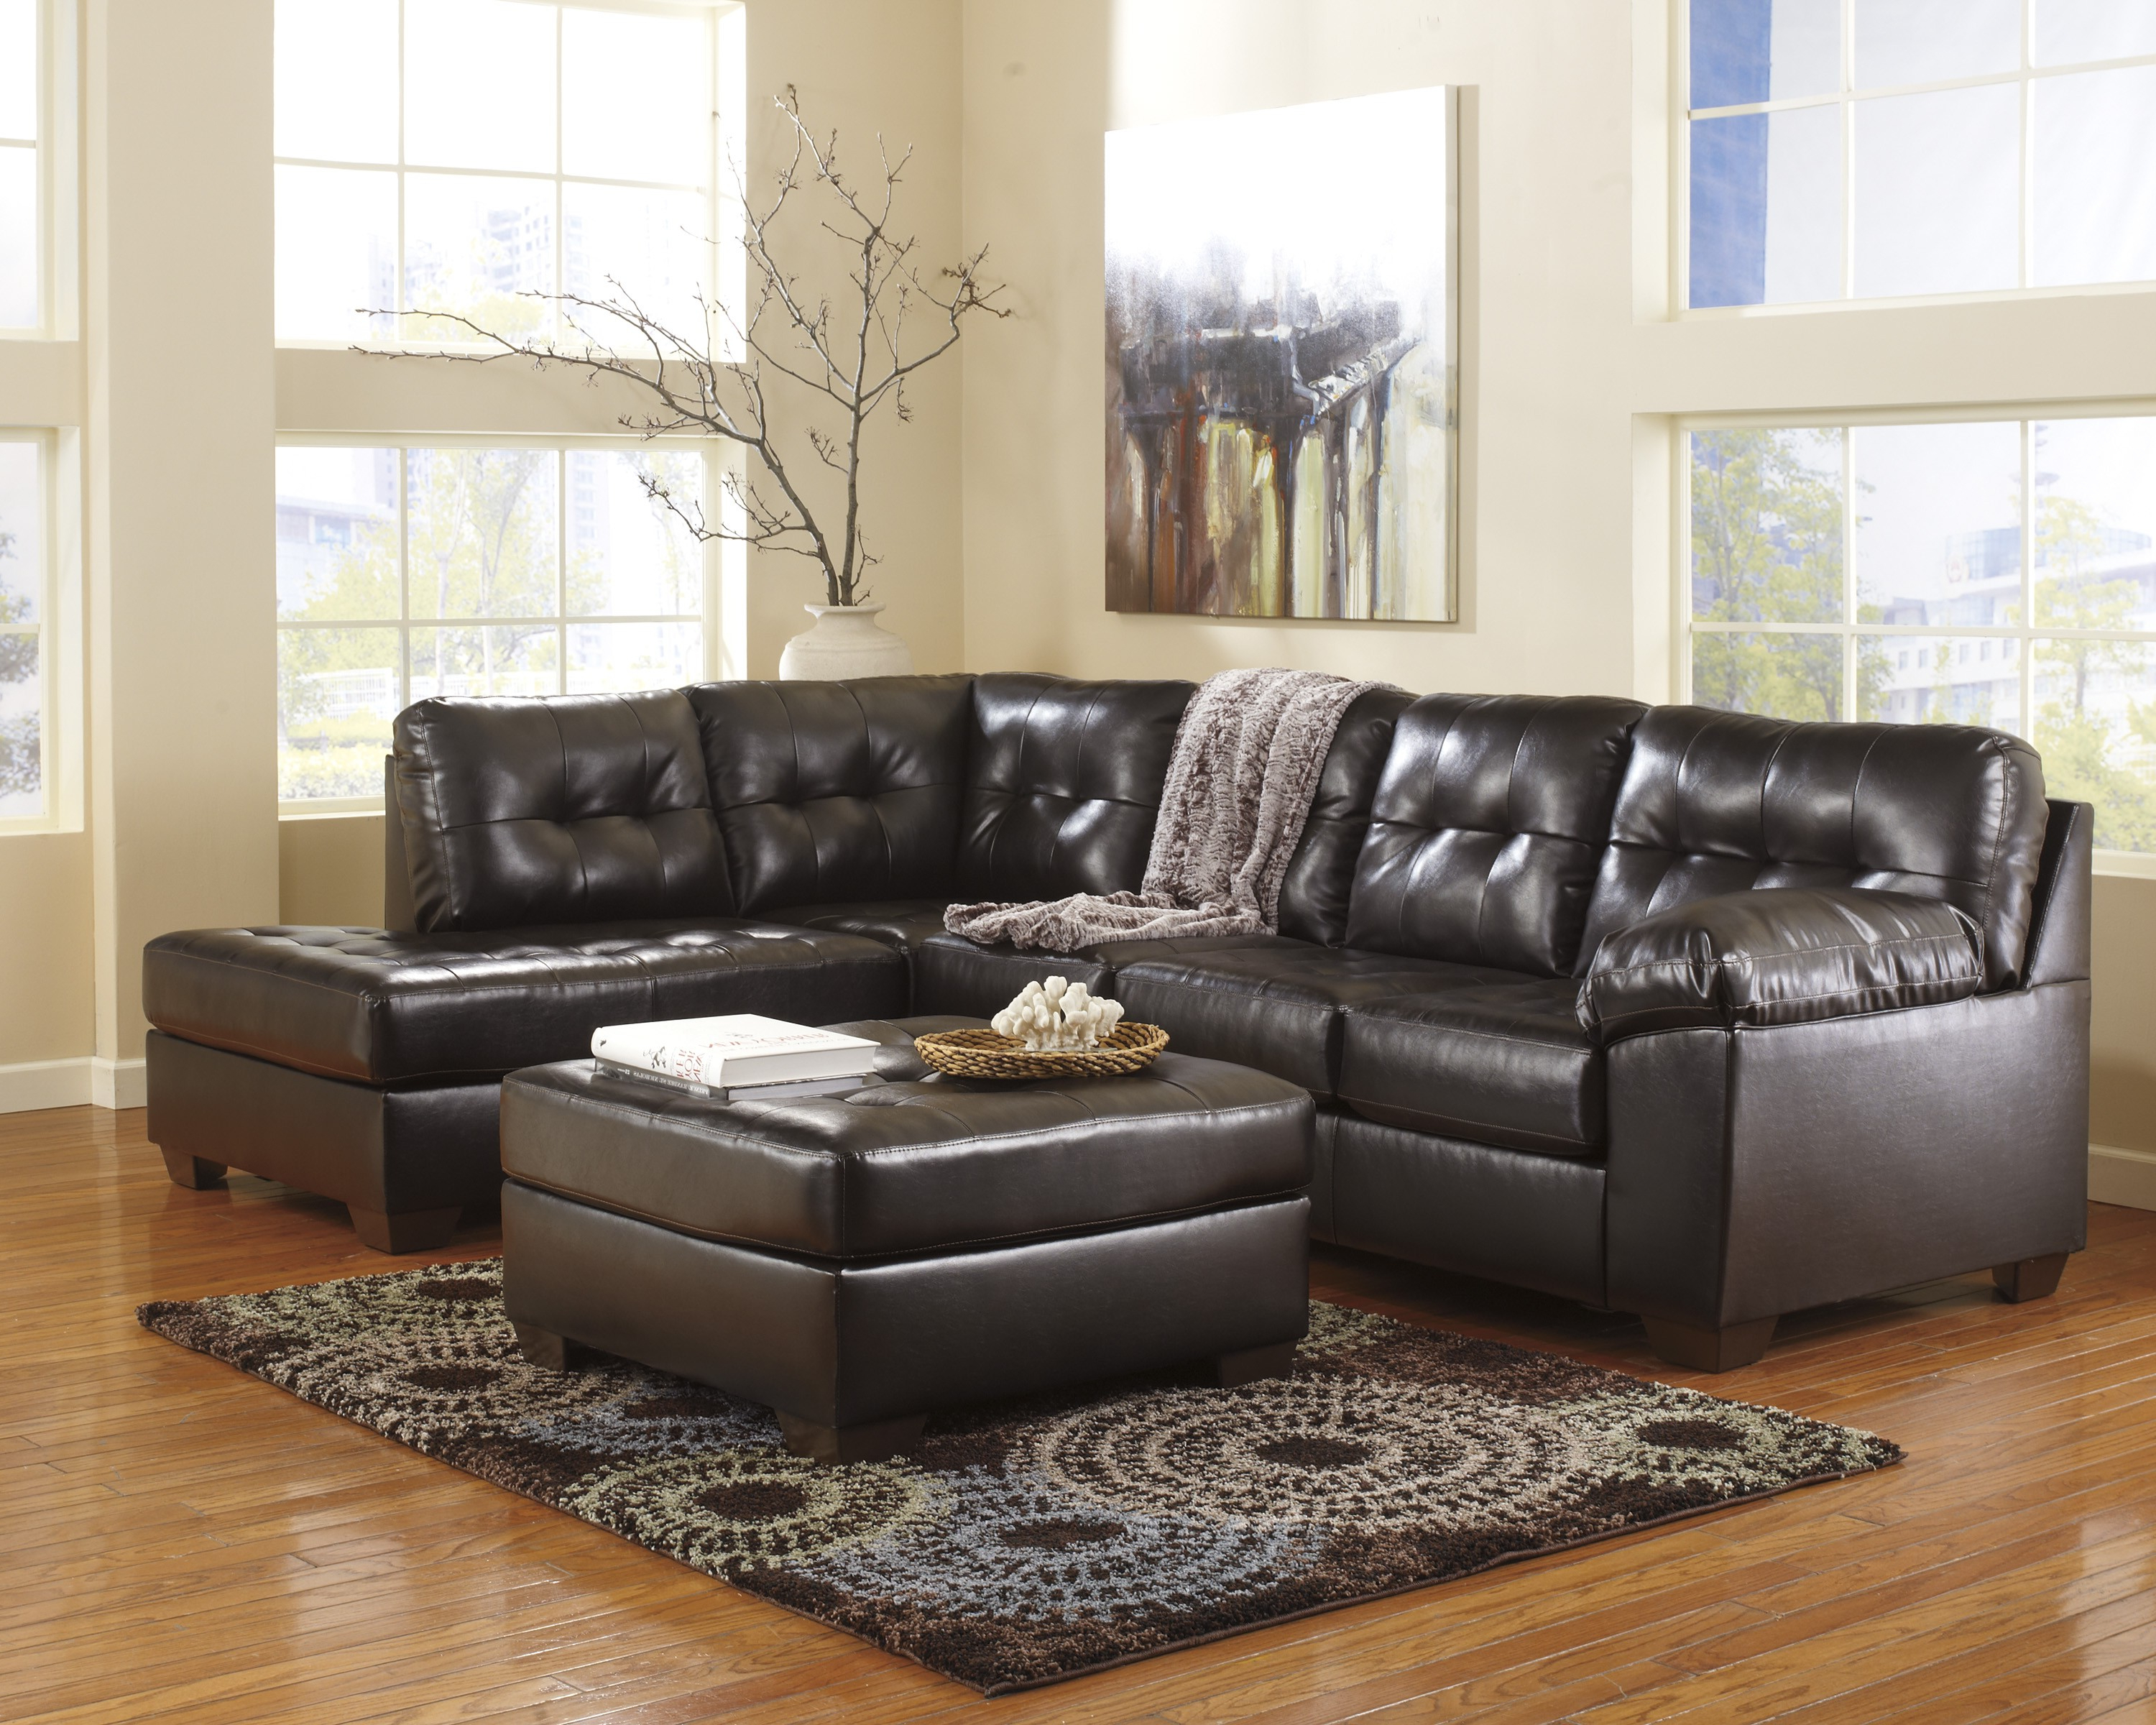 Baci Living Room With Regard To Norfolk Chocolate 6 Piece Sectionals With Laf Chaise (View 5 of 20)